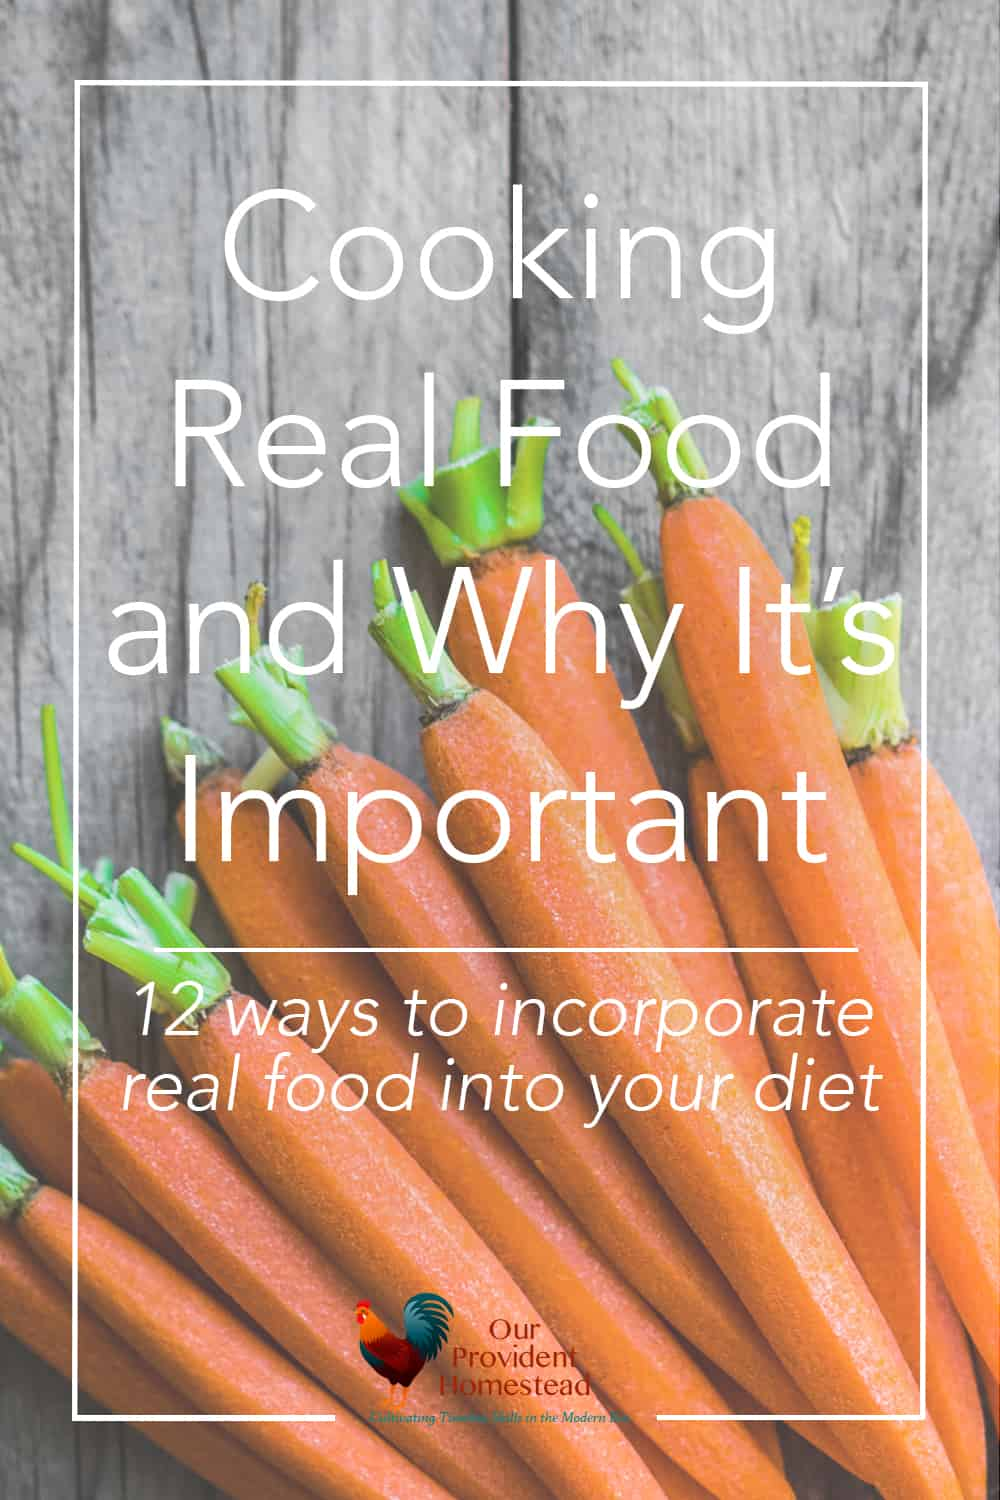 Do you want to learn how to cook real food for your family? We discuss real food, why it's important and 12 steps to incorporating it into your diet. Cooking Real Food | Real Food Diet | Why eat real food?